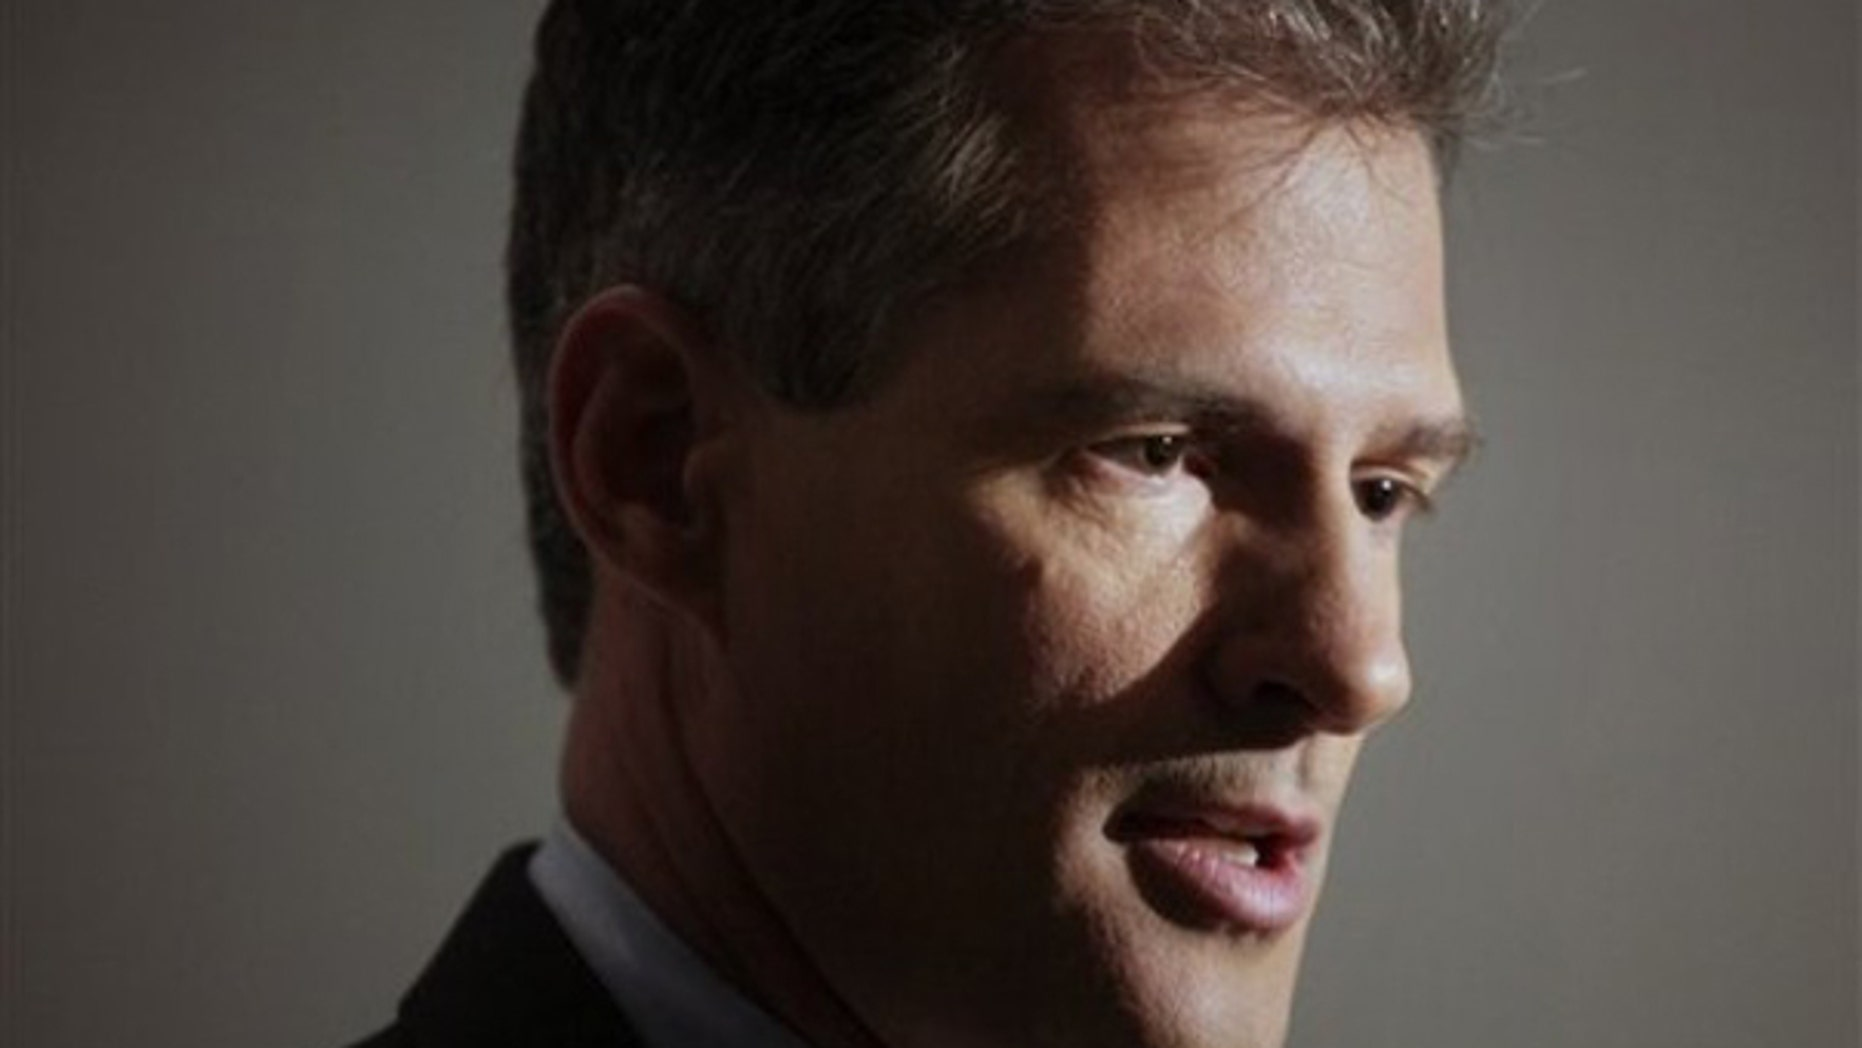 Republican hopeful in Senate race, State Rep. Scott Brown faces reporters moments after a debate recorded for a local television show in Boston, Monday, Dec. 7, 2009. (AP)